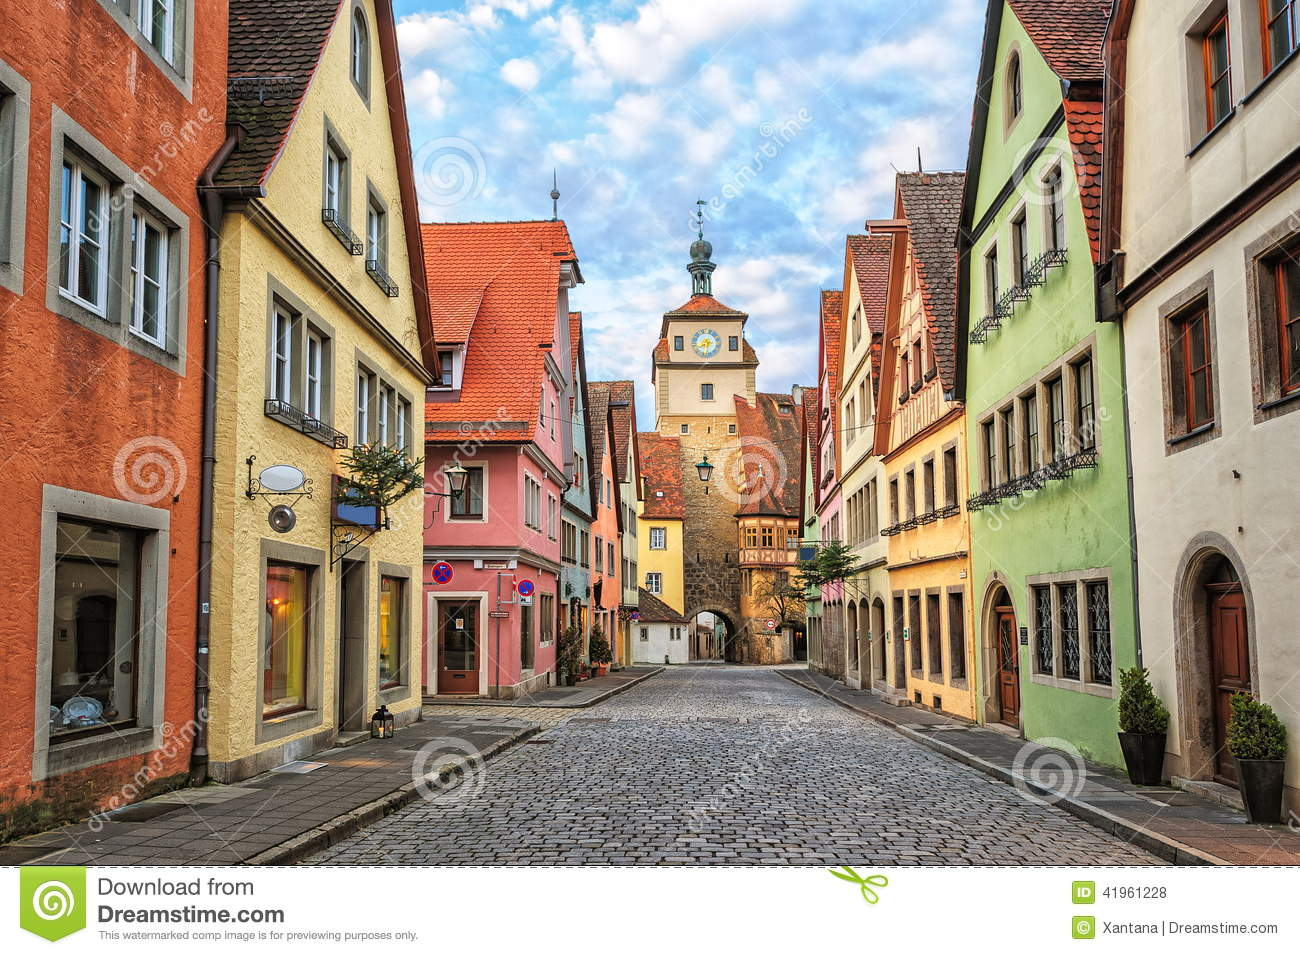 rothenburg ob der tauber germany stock photo image of gothic attraction 41961228. Black Bedroom Furniture Sets. Home Design Ideas